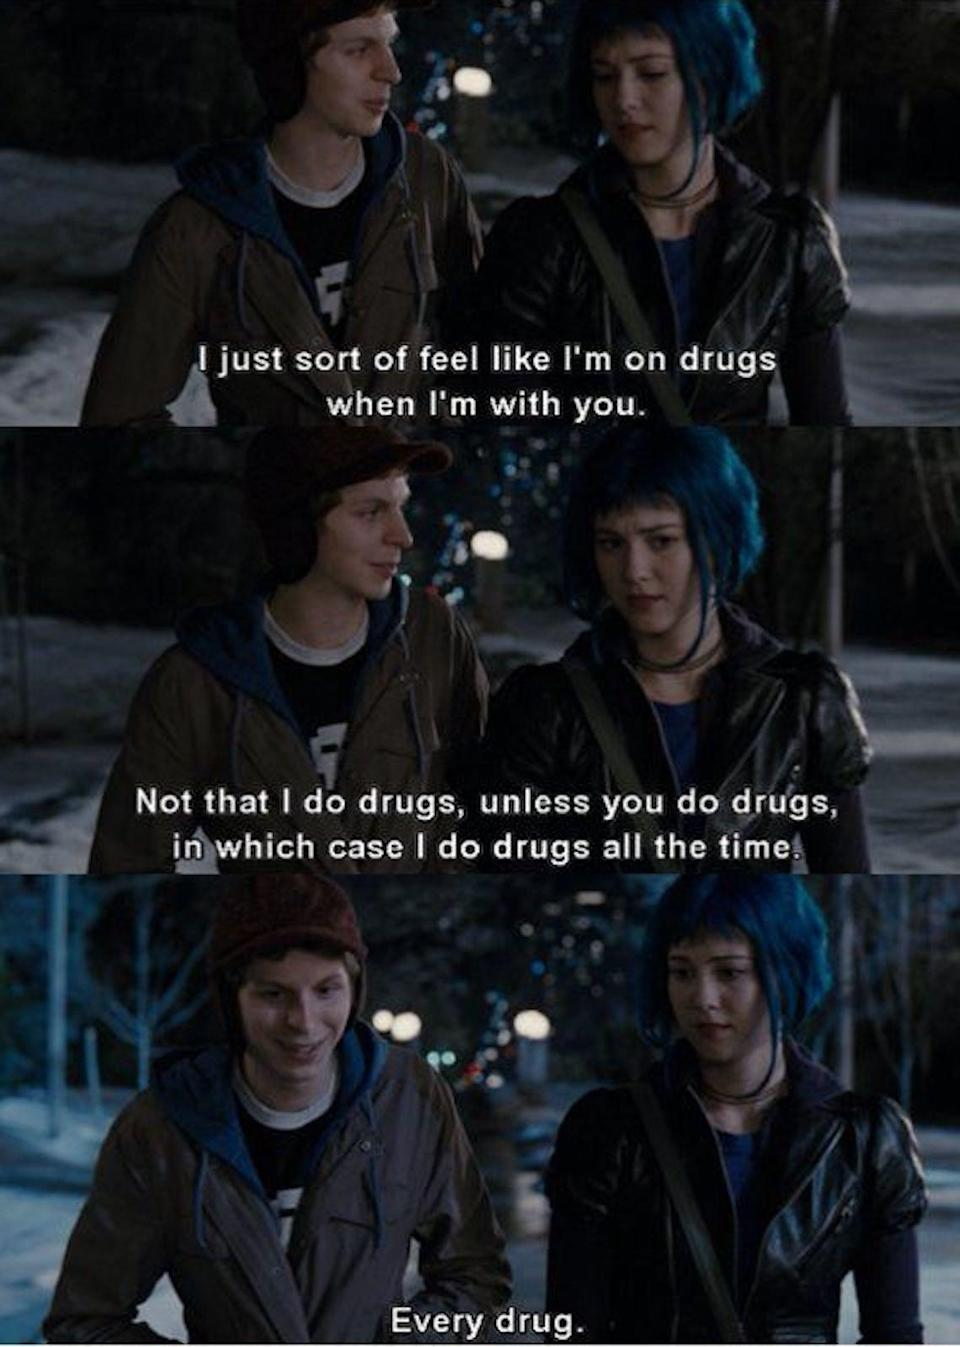 """Scott telling Ramona: """"I feel like I'm on drugs when I'm with you. Not that I do drugs, unless you do drugs, in which case I do drugs all the time"""""""